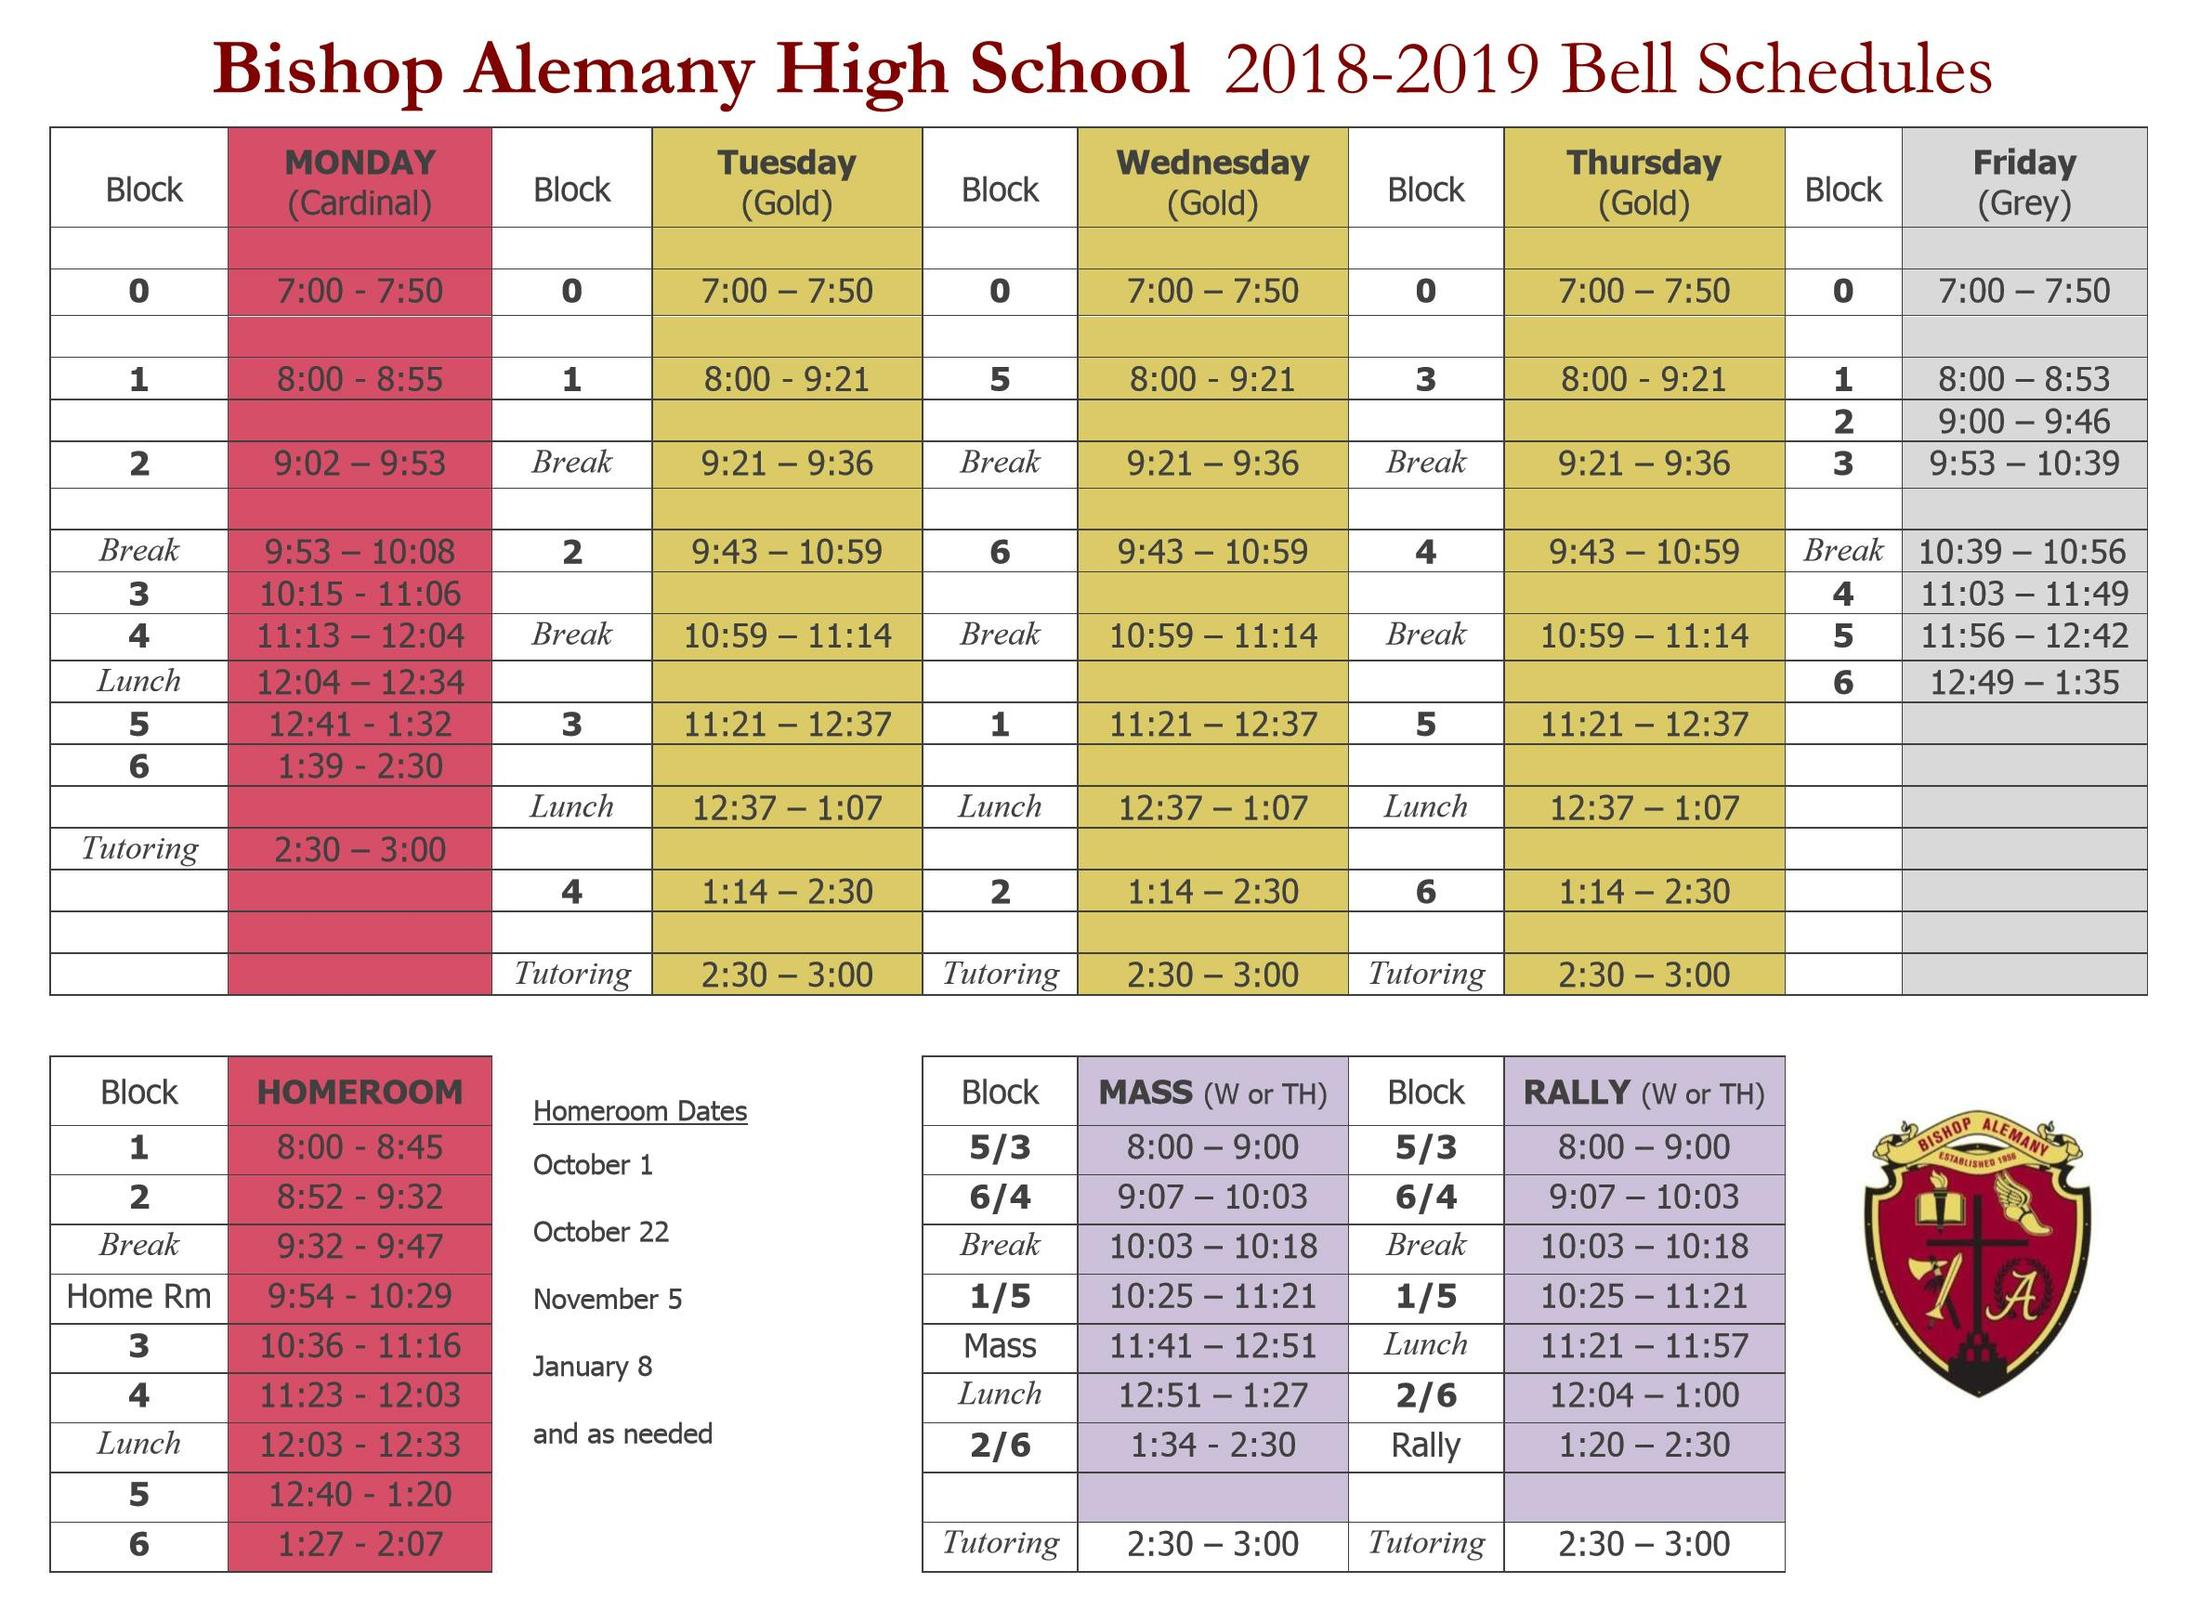 2018 2019 bell schedule about us bishop alemany high school